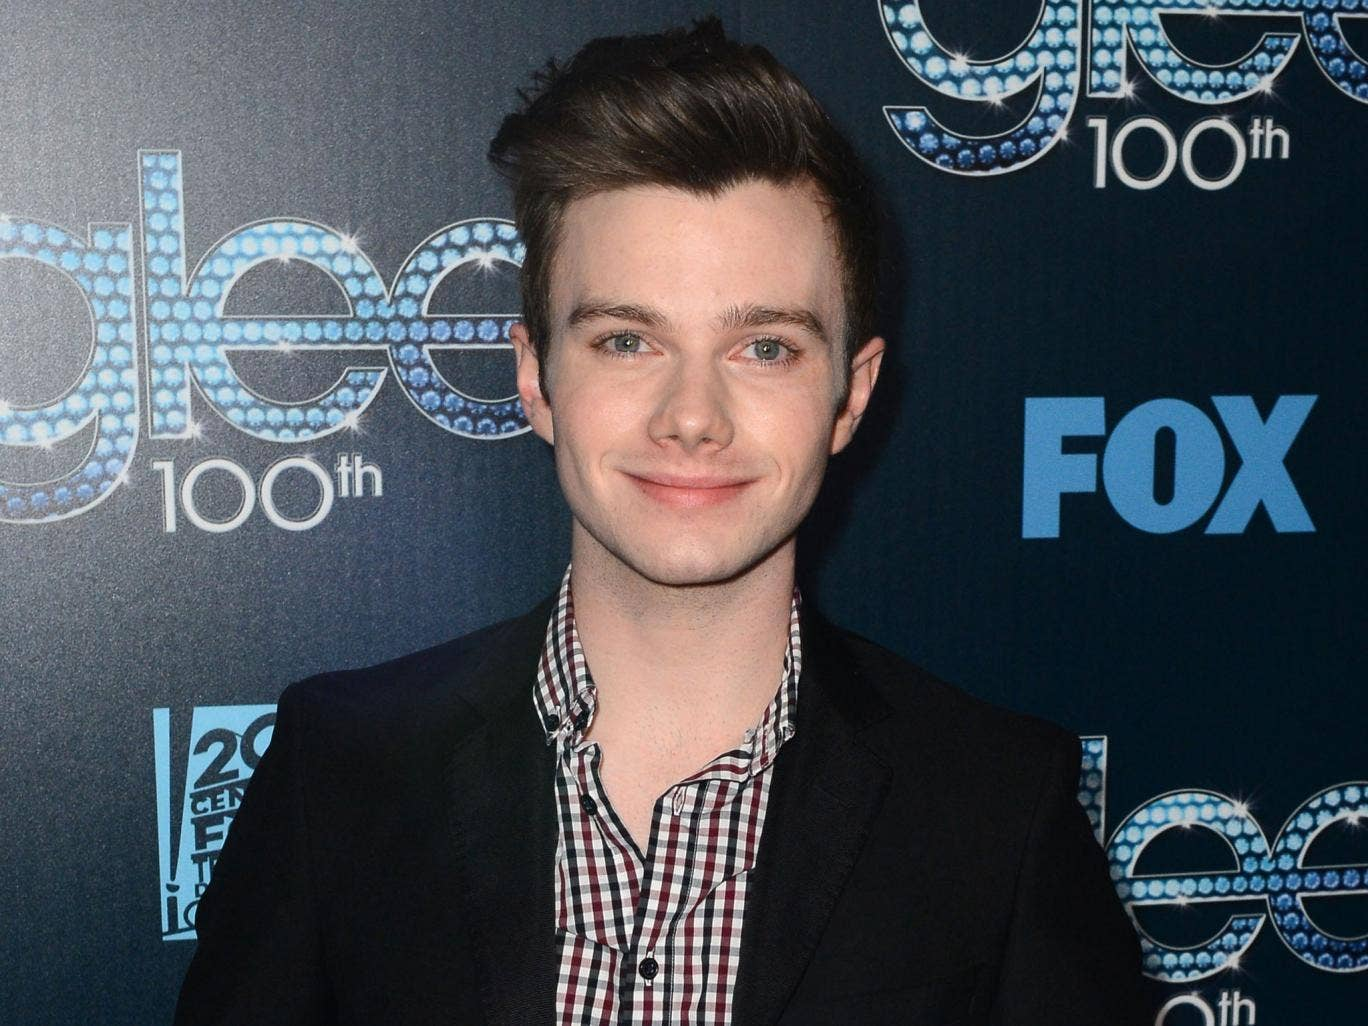 Actor Chris Colfer attends Fox's 'GLEE' 100th Episode Celebration held at Chateau Marmont on March 18, 2014 in Los Angeles, California.